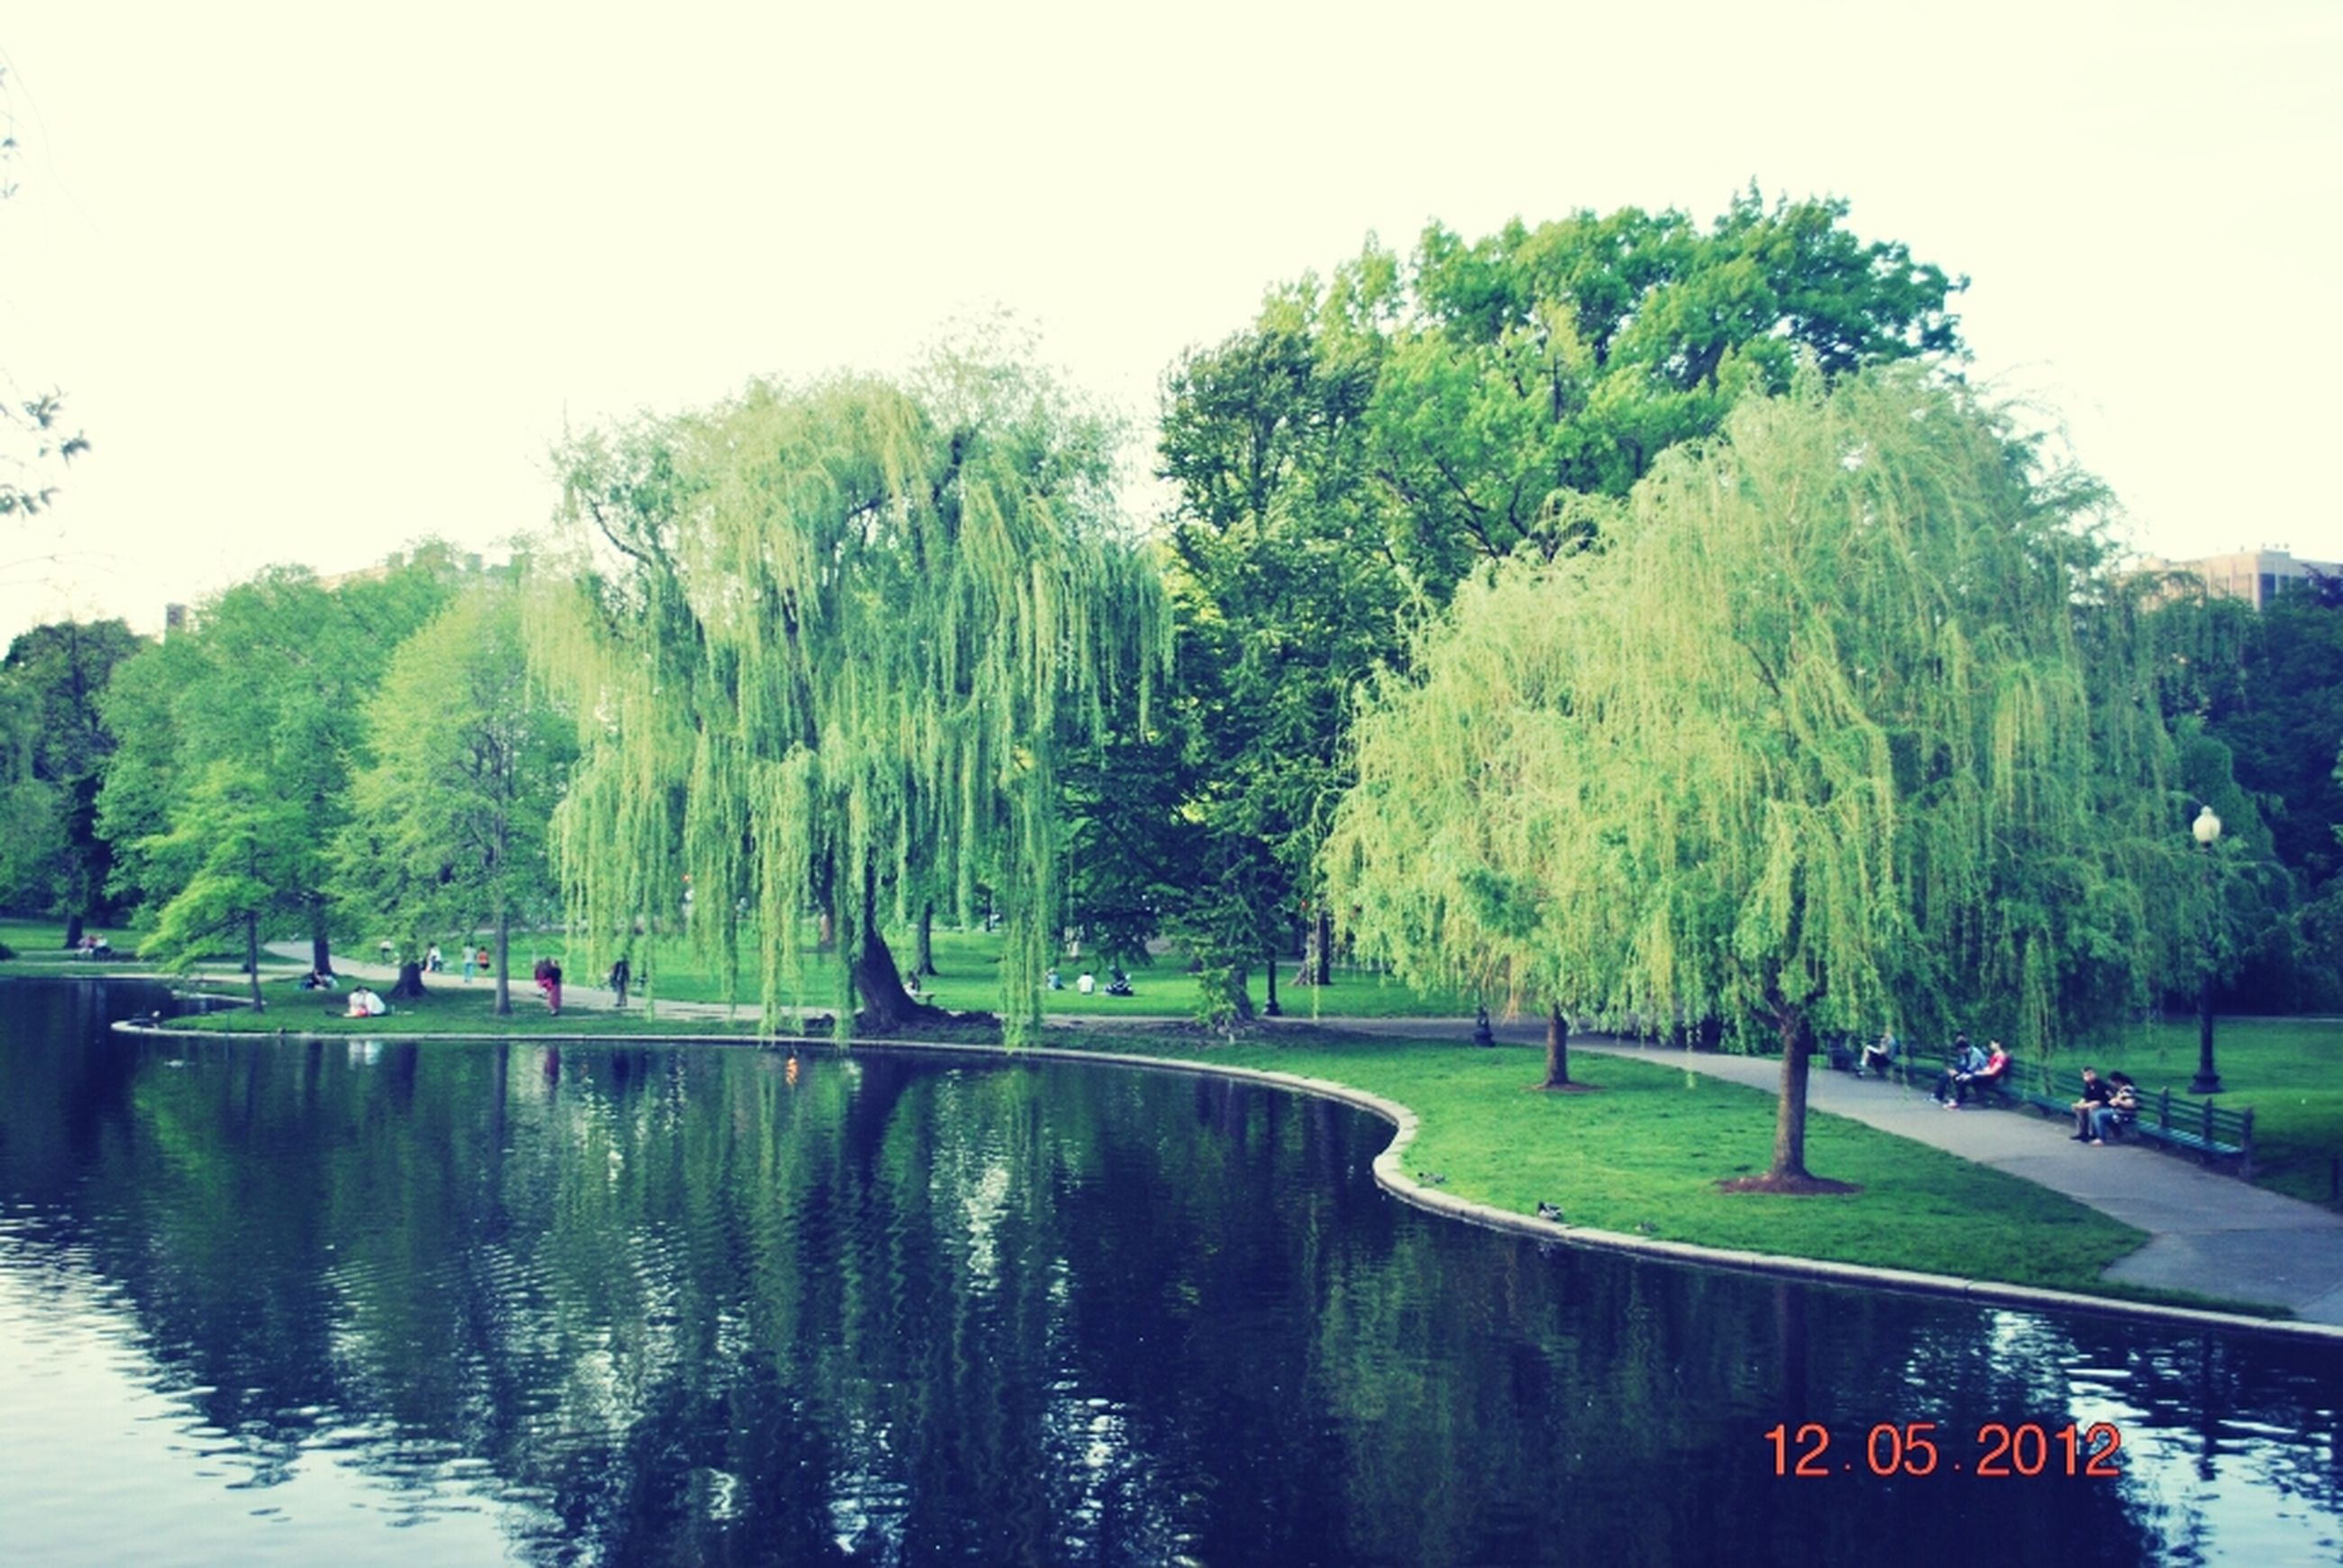 tree, water, lake, waterfront, clear sky, river, green color, tranquility, tranquil scene, nature, growth, transportation, day, incidental people, beauty in nature, scenics, reflection, outdoors, men